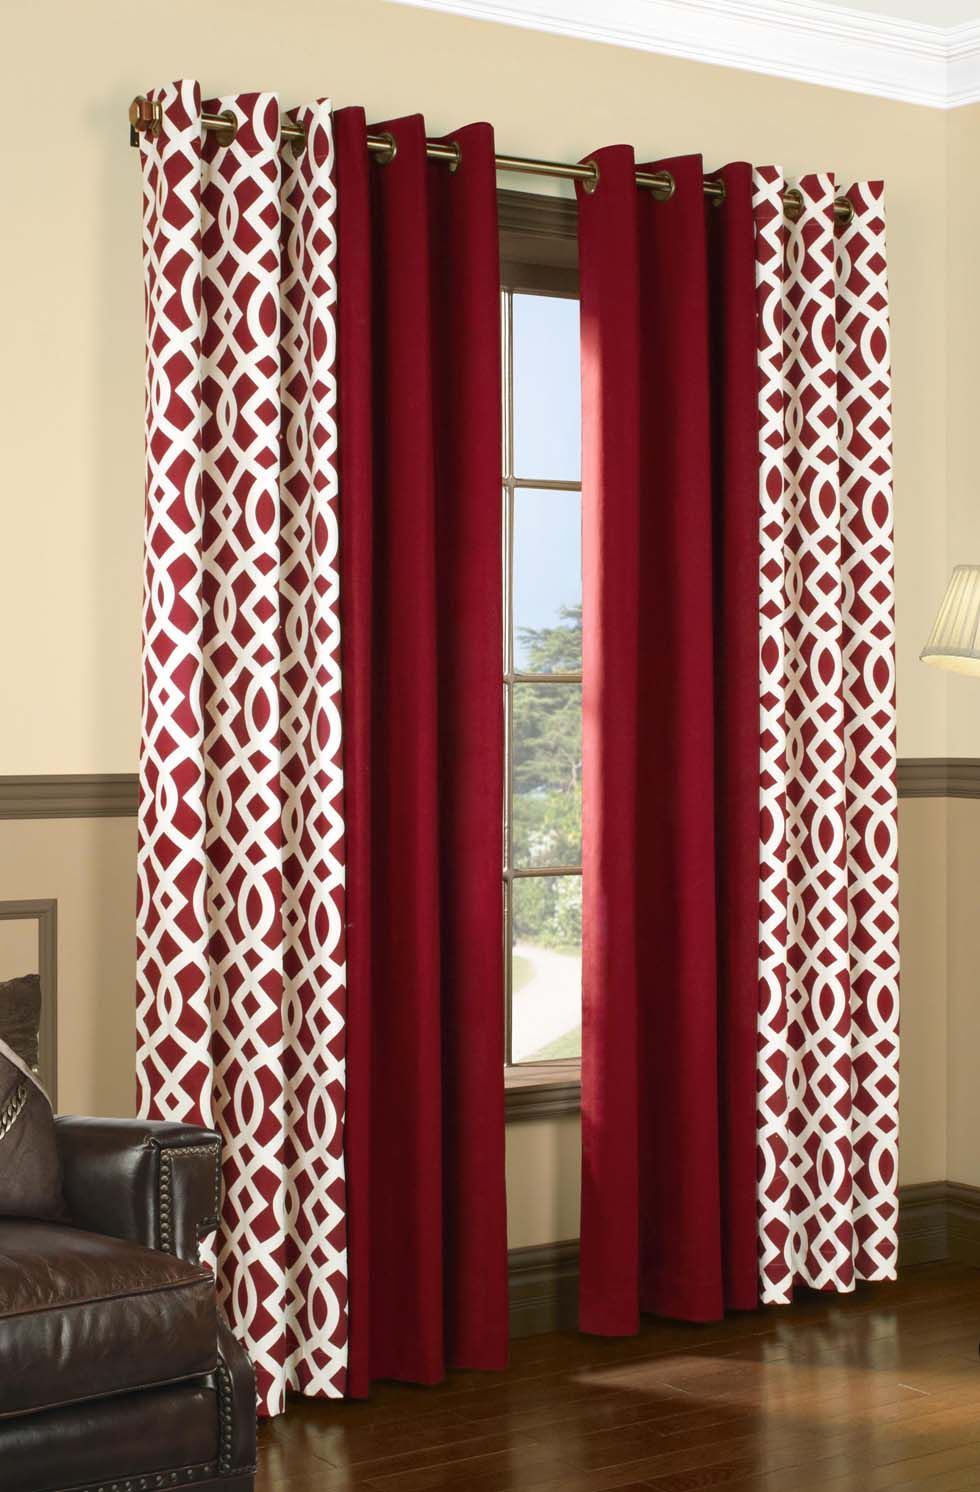 20 Hottest Curtain Designs For 2017 Home Should Always Be The